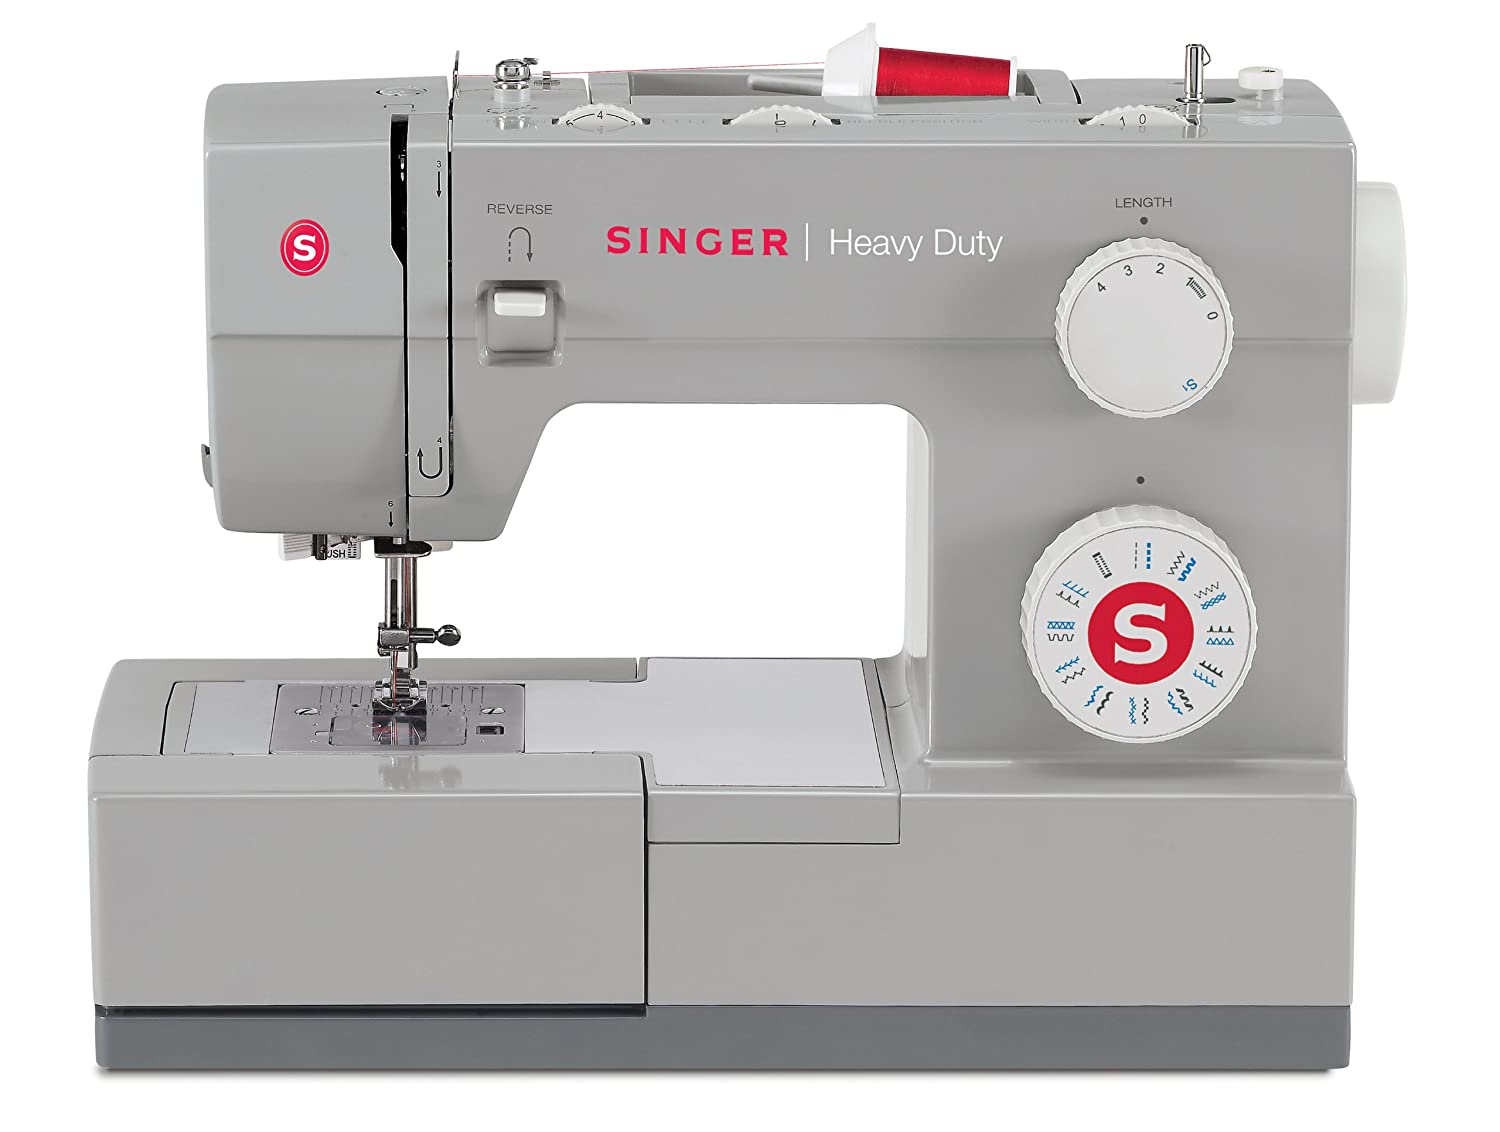 Best signer sewing machine